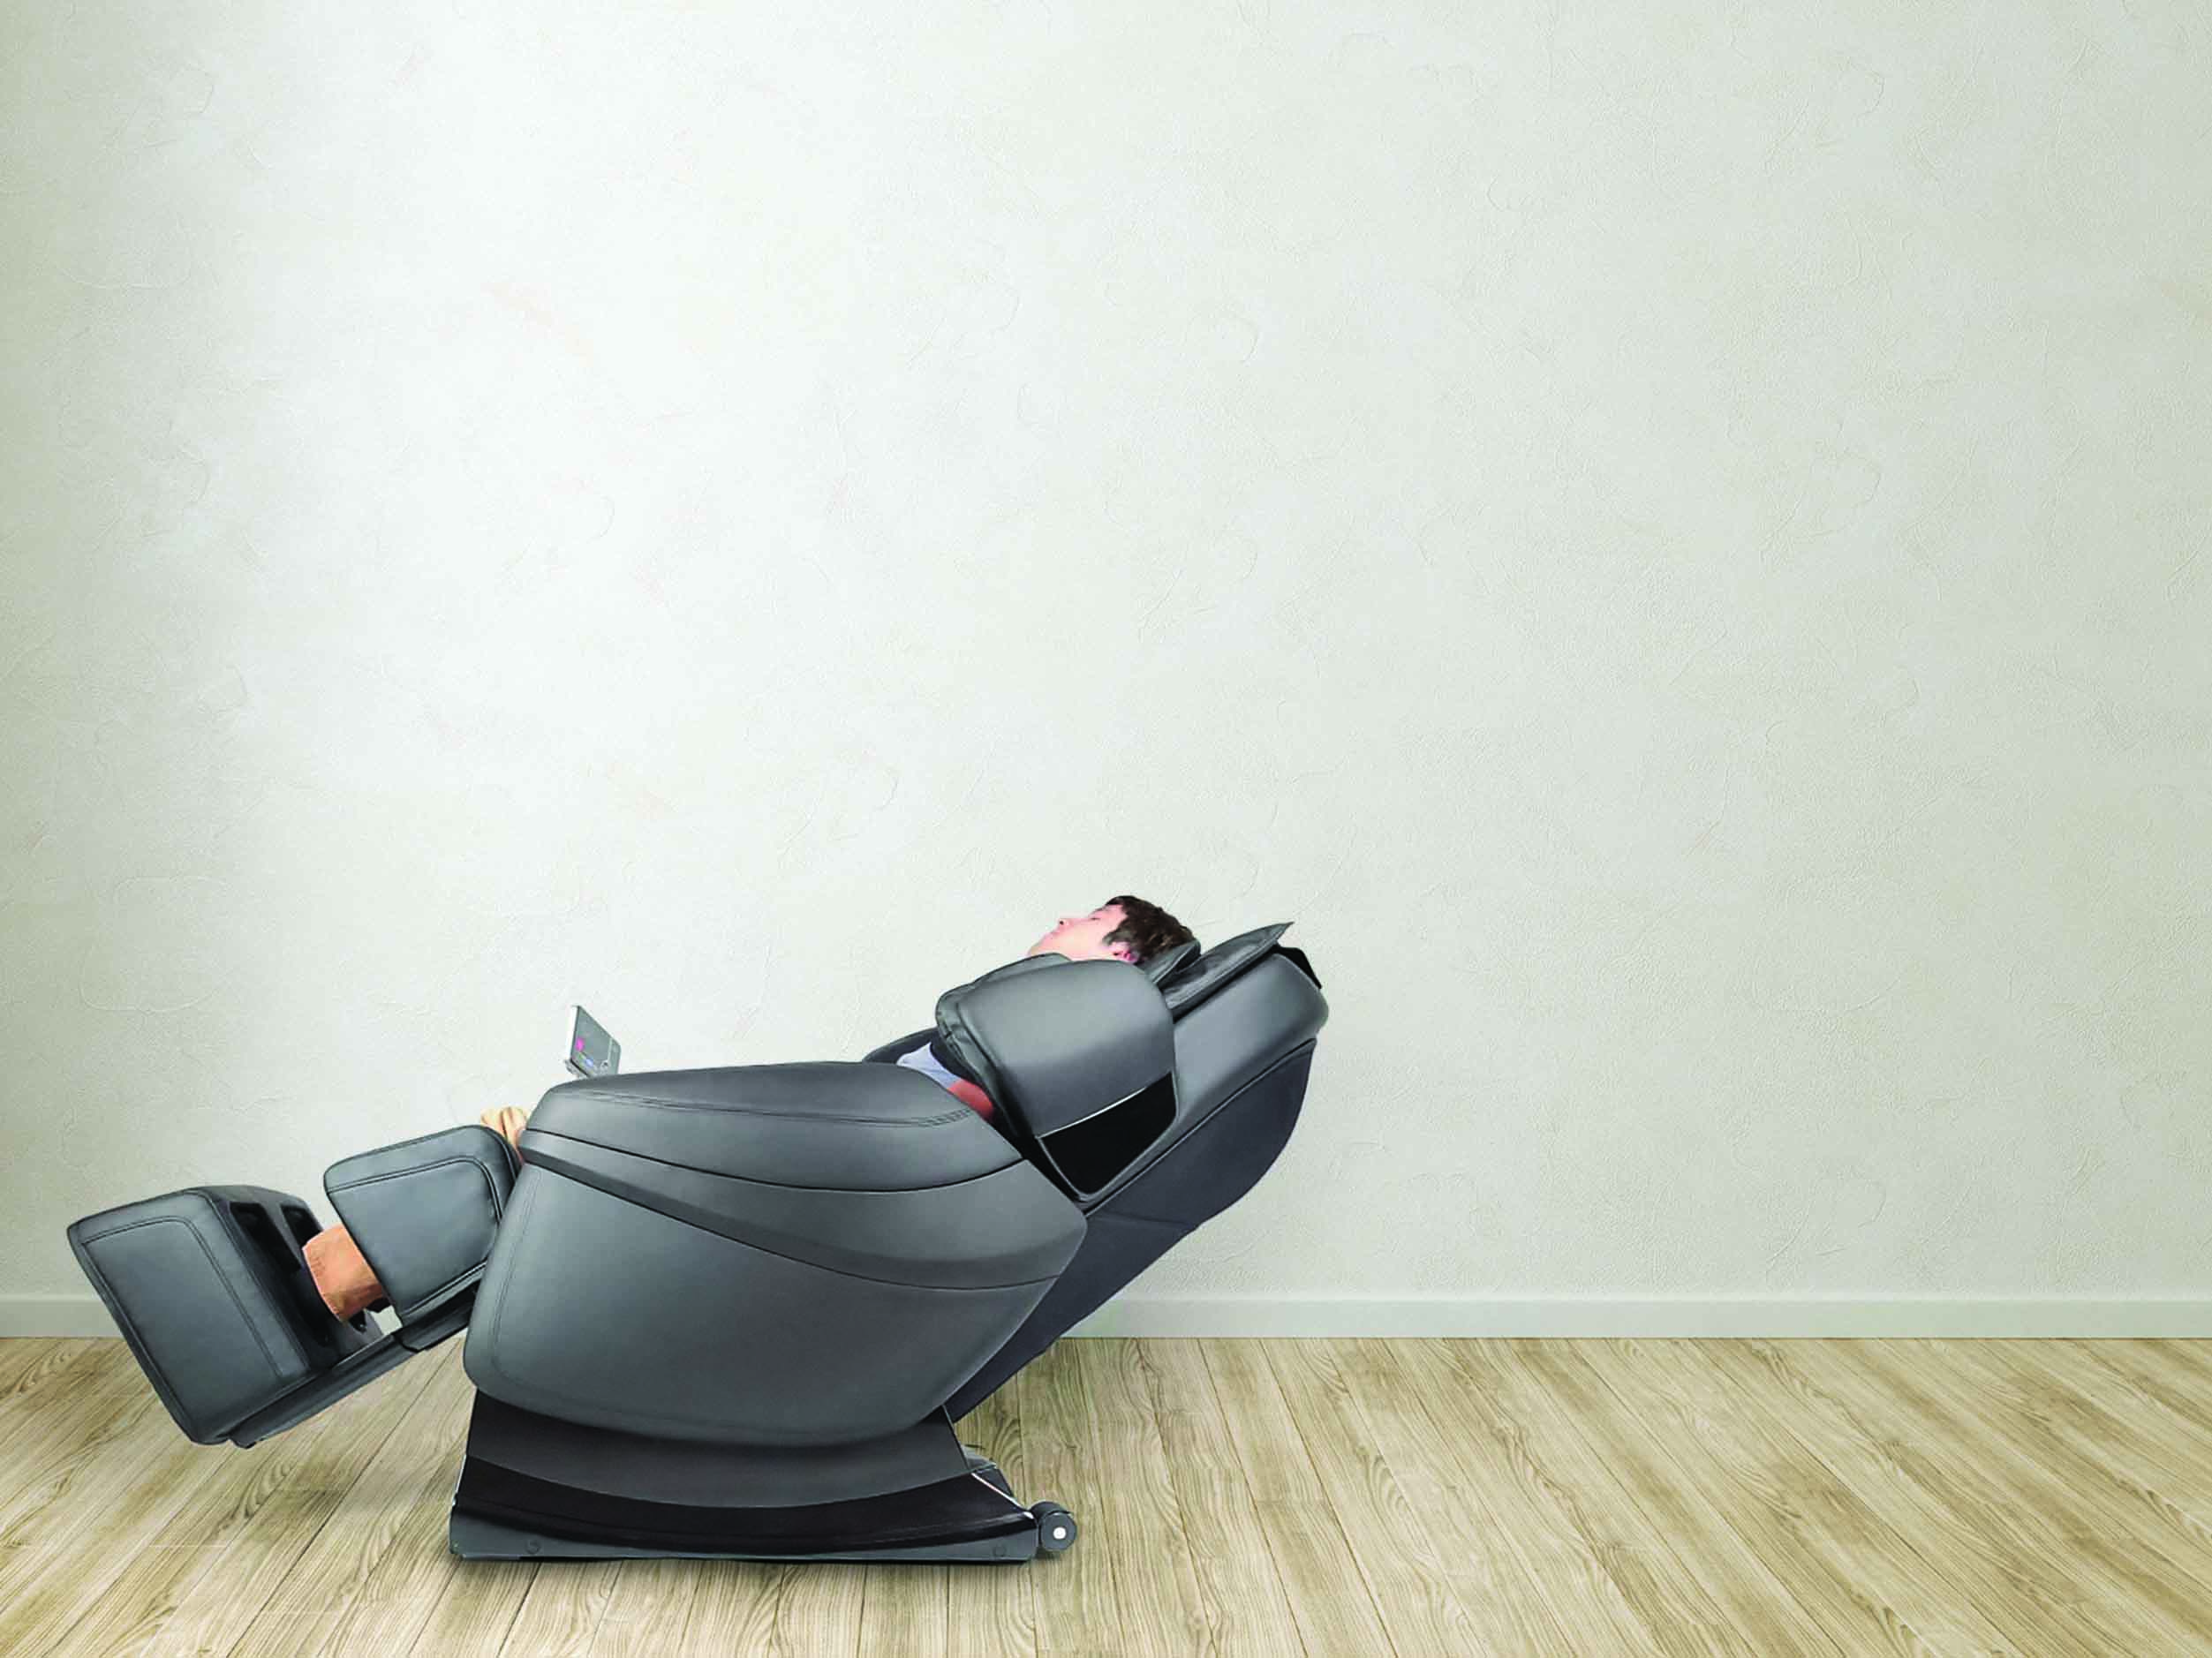 Elite Massage Chair Elite Massage Chairs Provides Tip Sheet To Consumers On